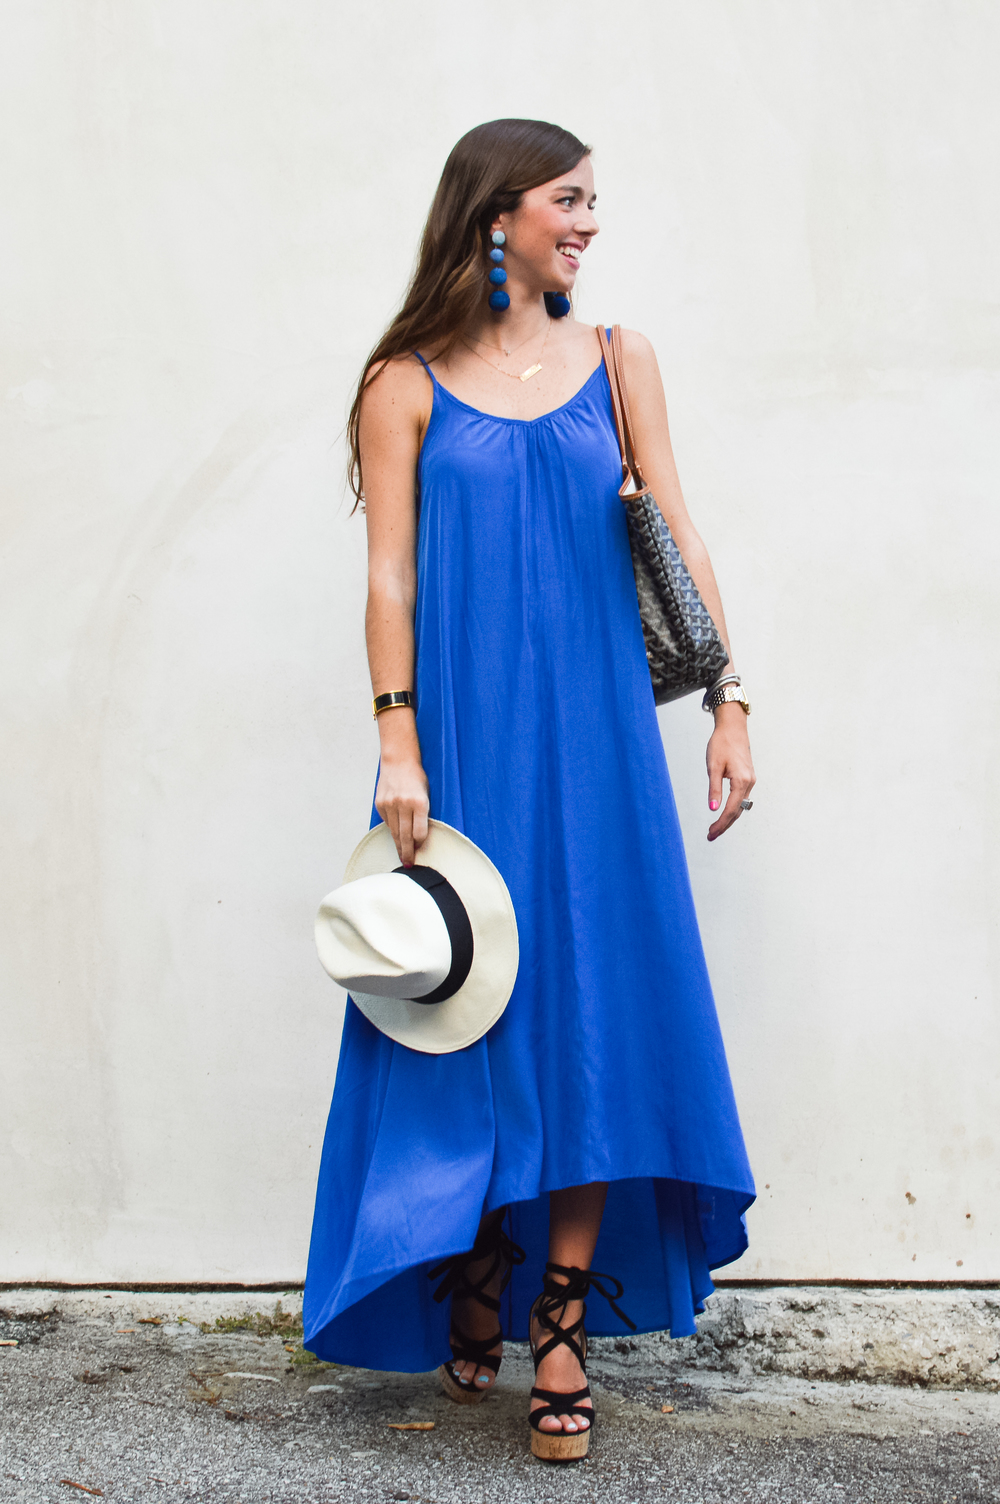 fashion blogger m gemi maxi dress (33 of 38).jpg